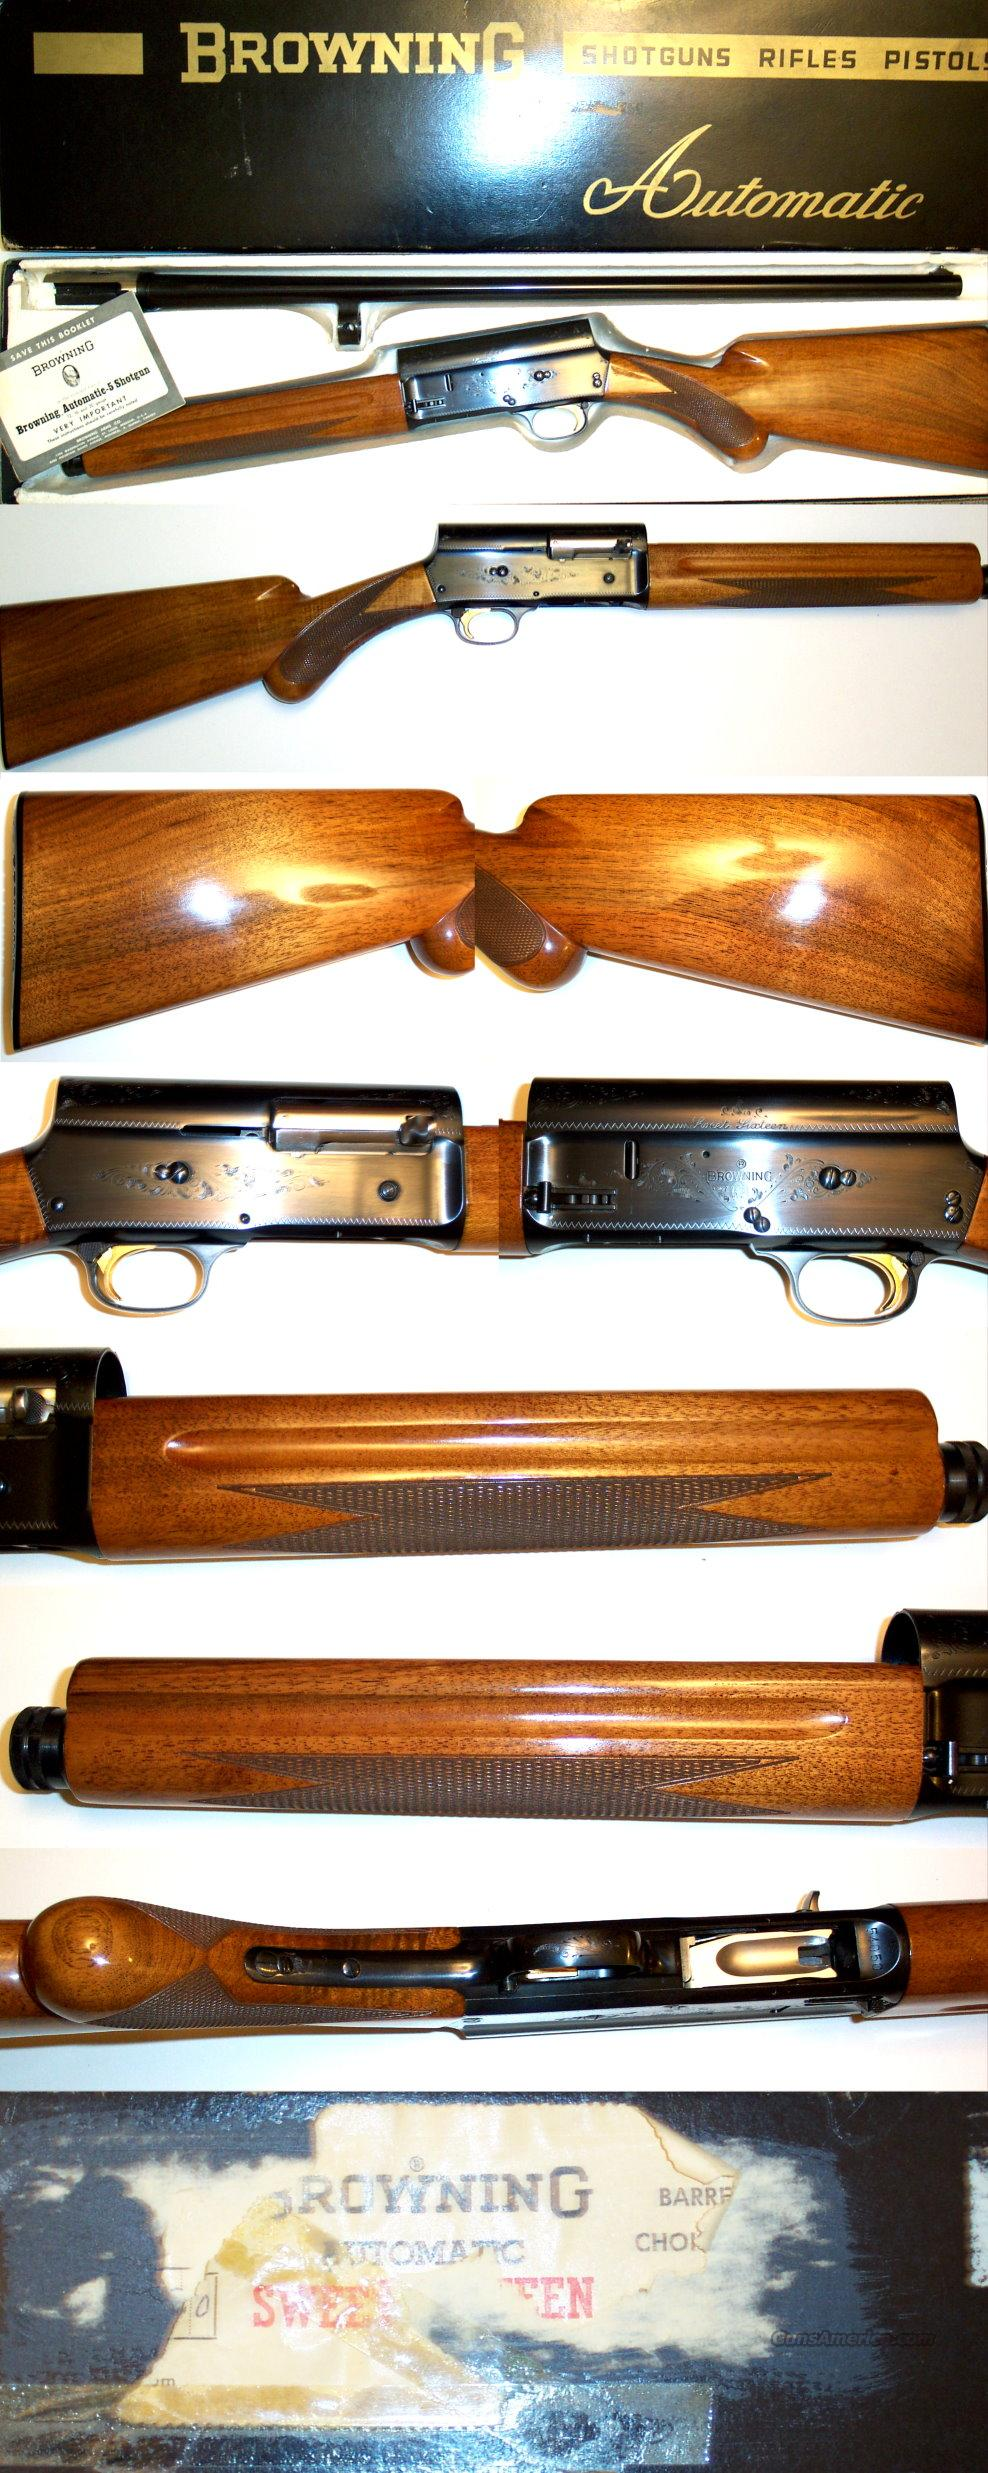 '66 Belgium Browning A5 Sweet Sixteen NIB  Guns > Shotguns > Browning Shotguns > Autoloaders > Hunting